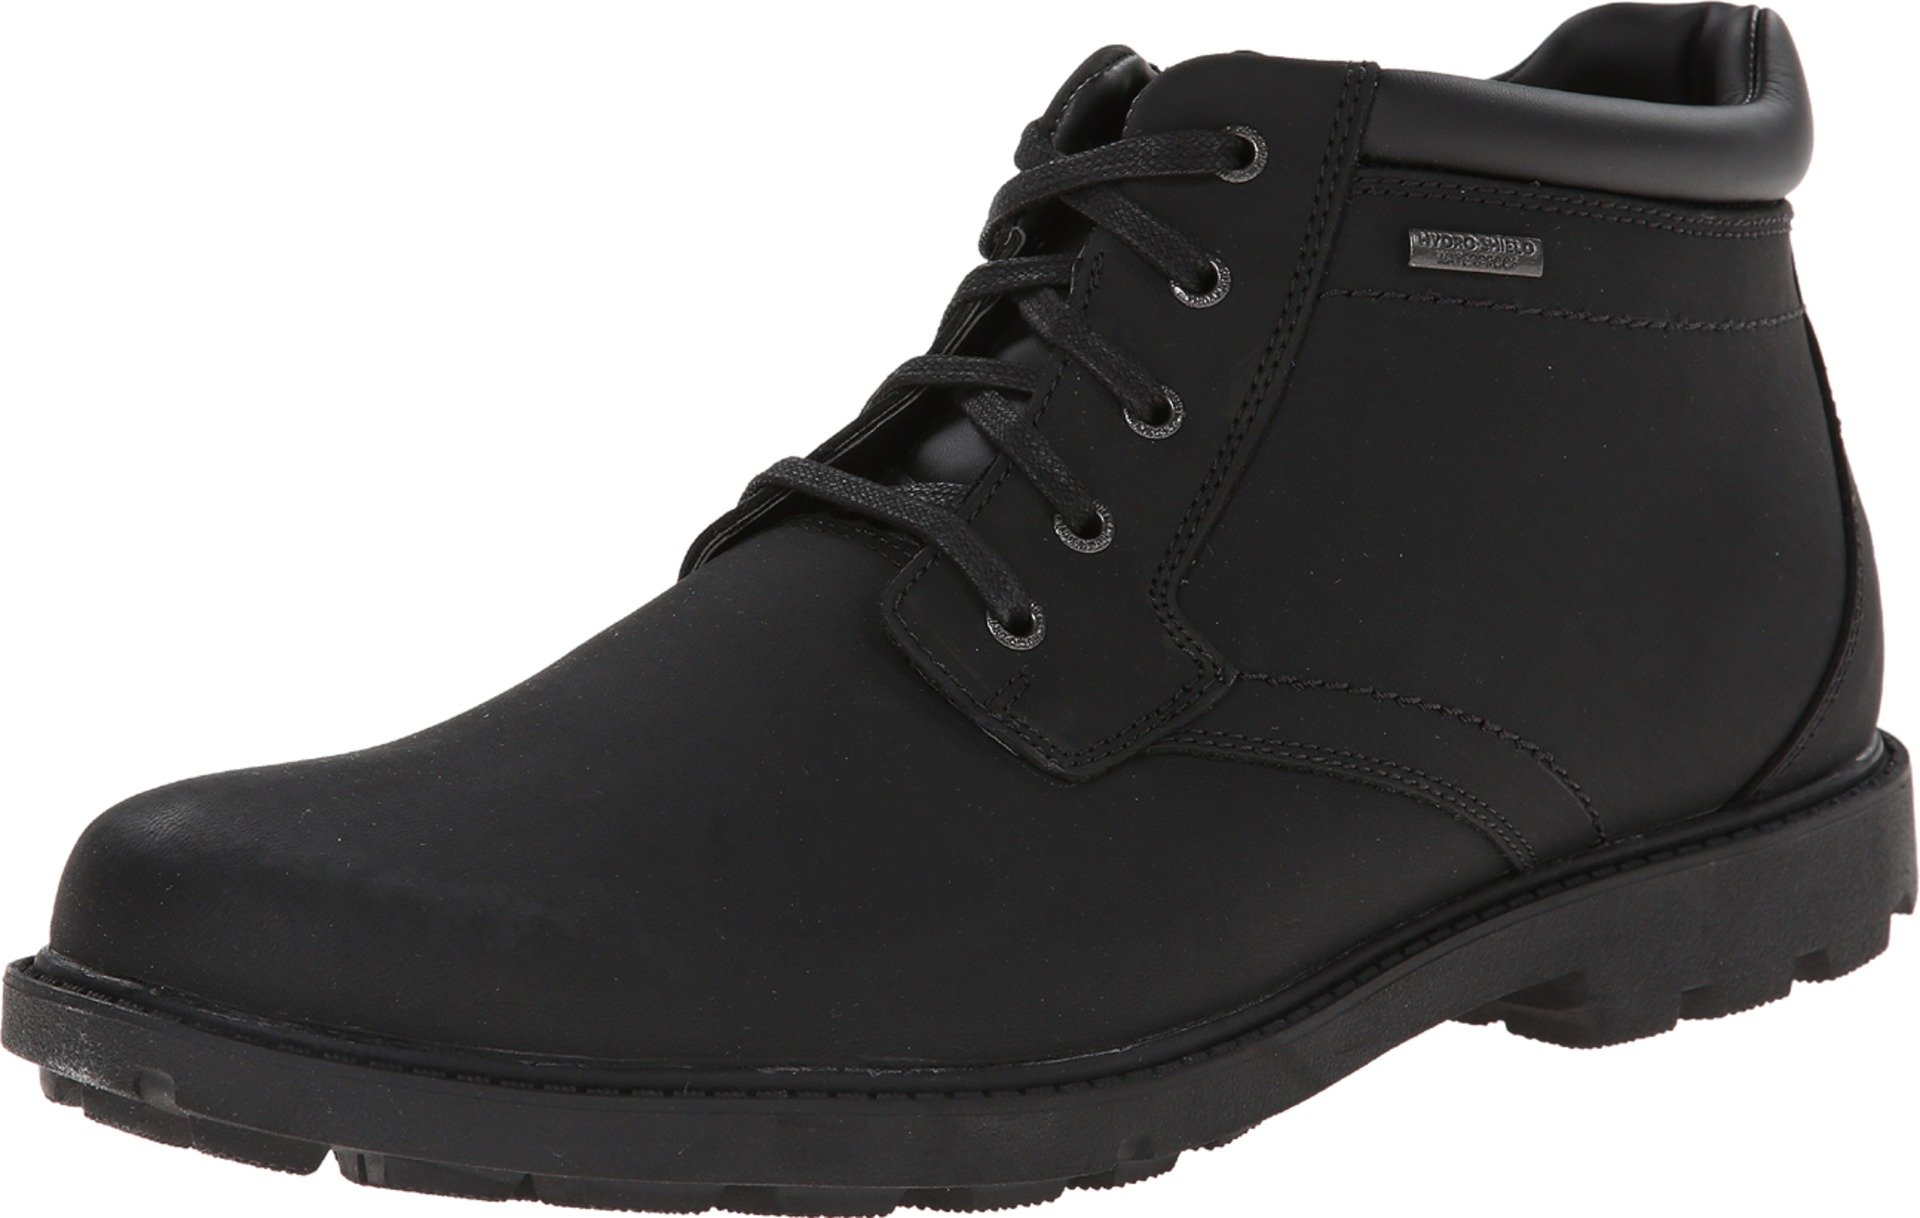 Rockport Men's Storm Surge Water Proof Plain Toe Boot Black 11 W (EE)-11 W